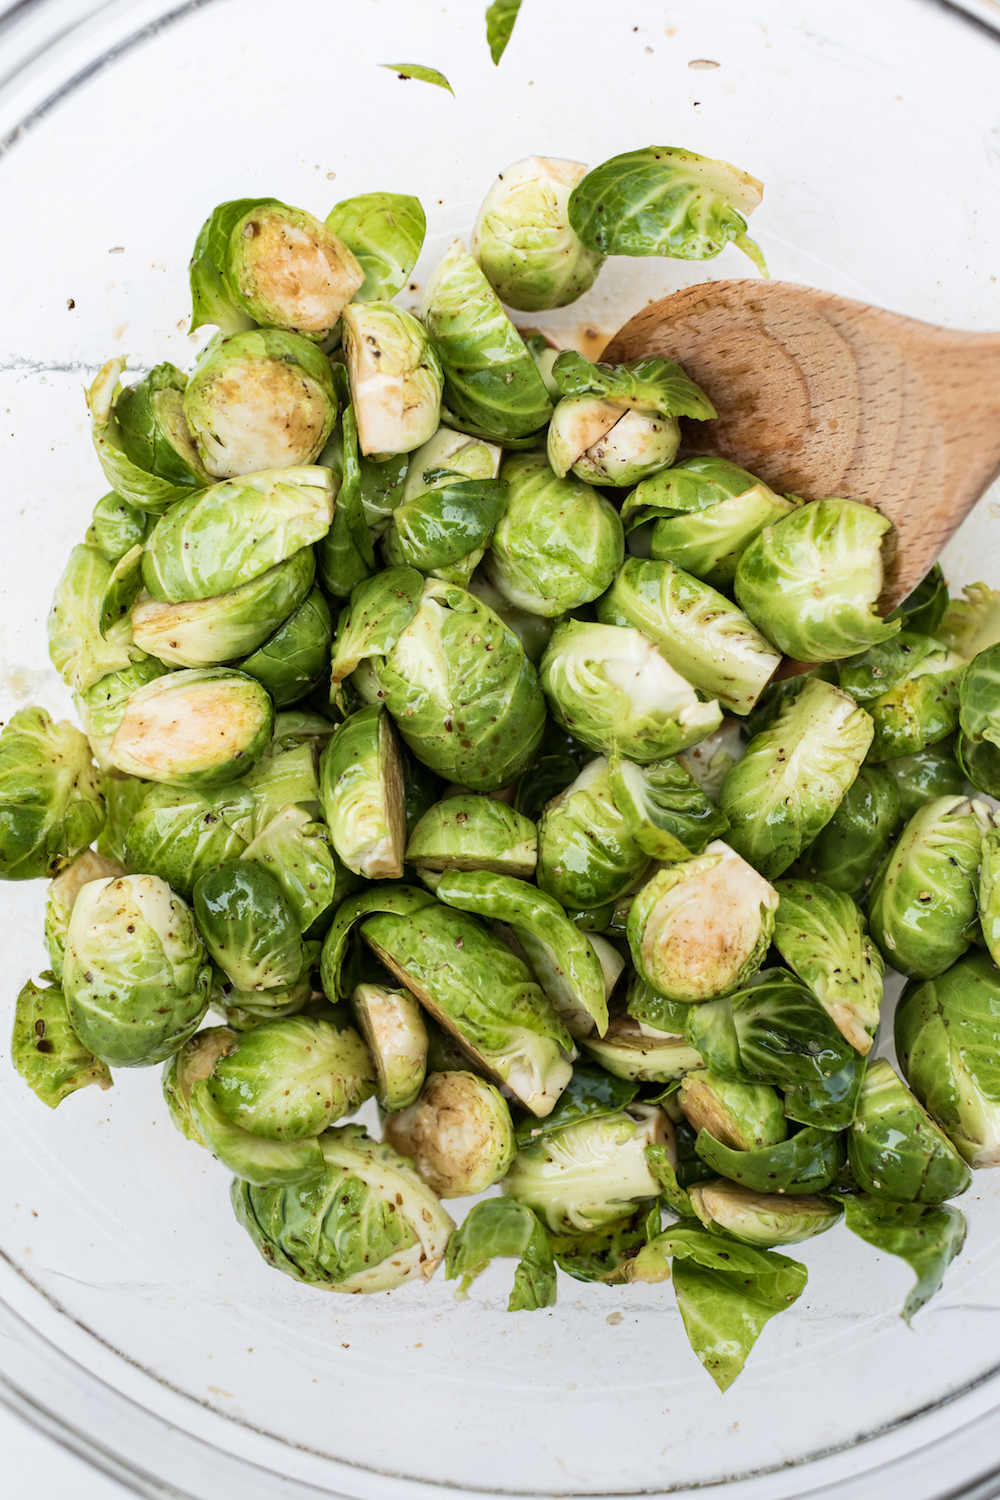 Making Roasted Brussels Sprouts